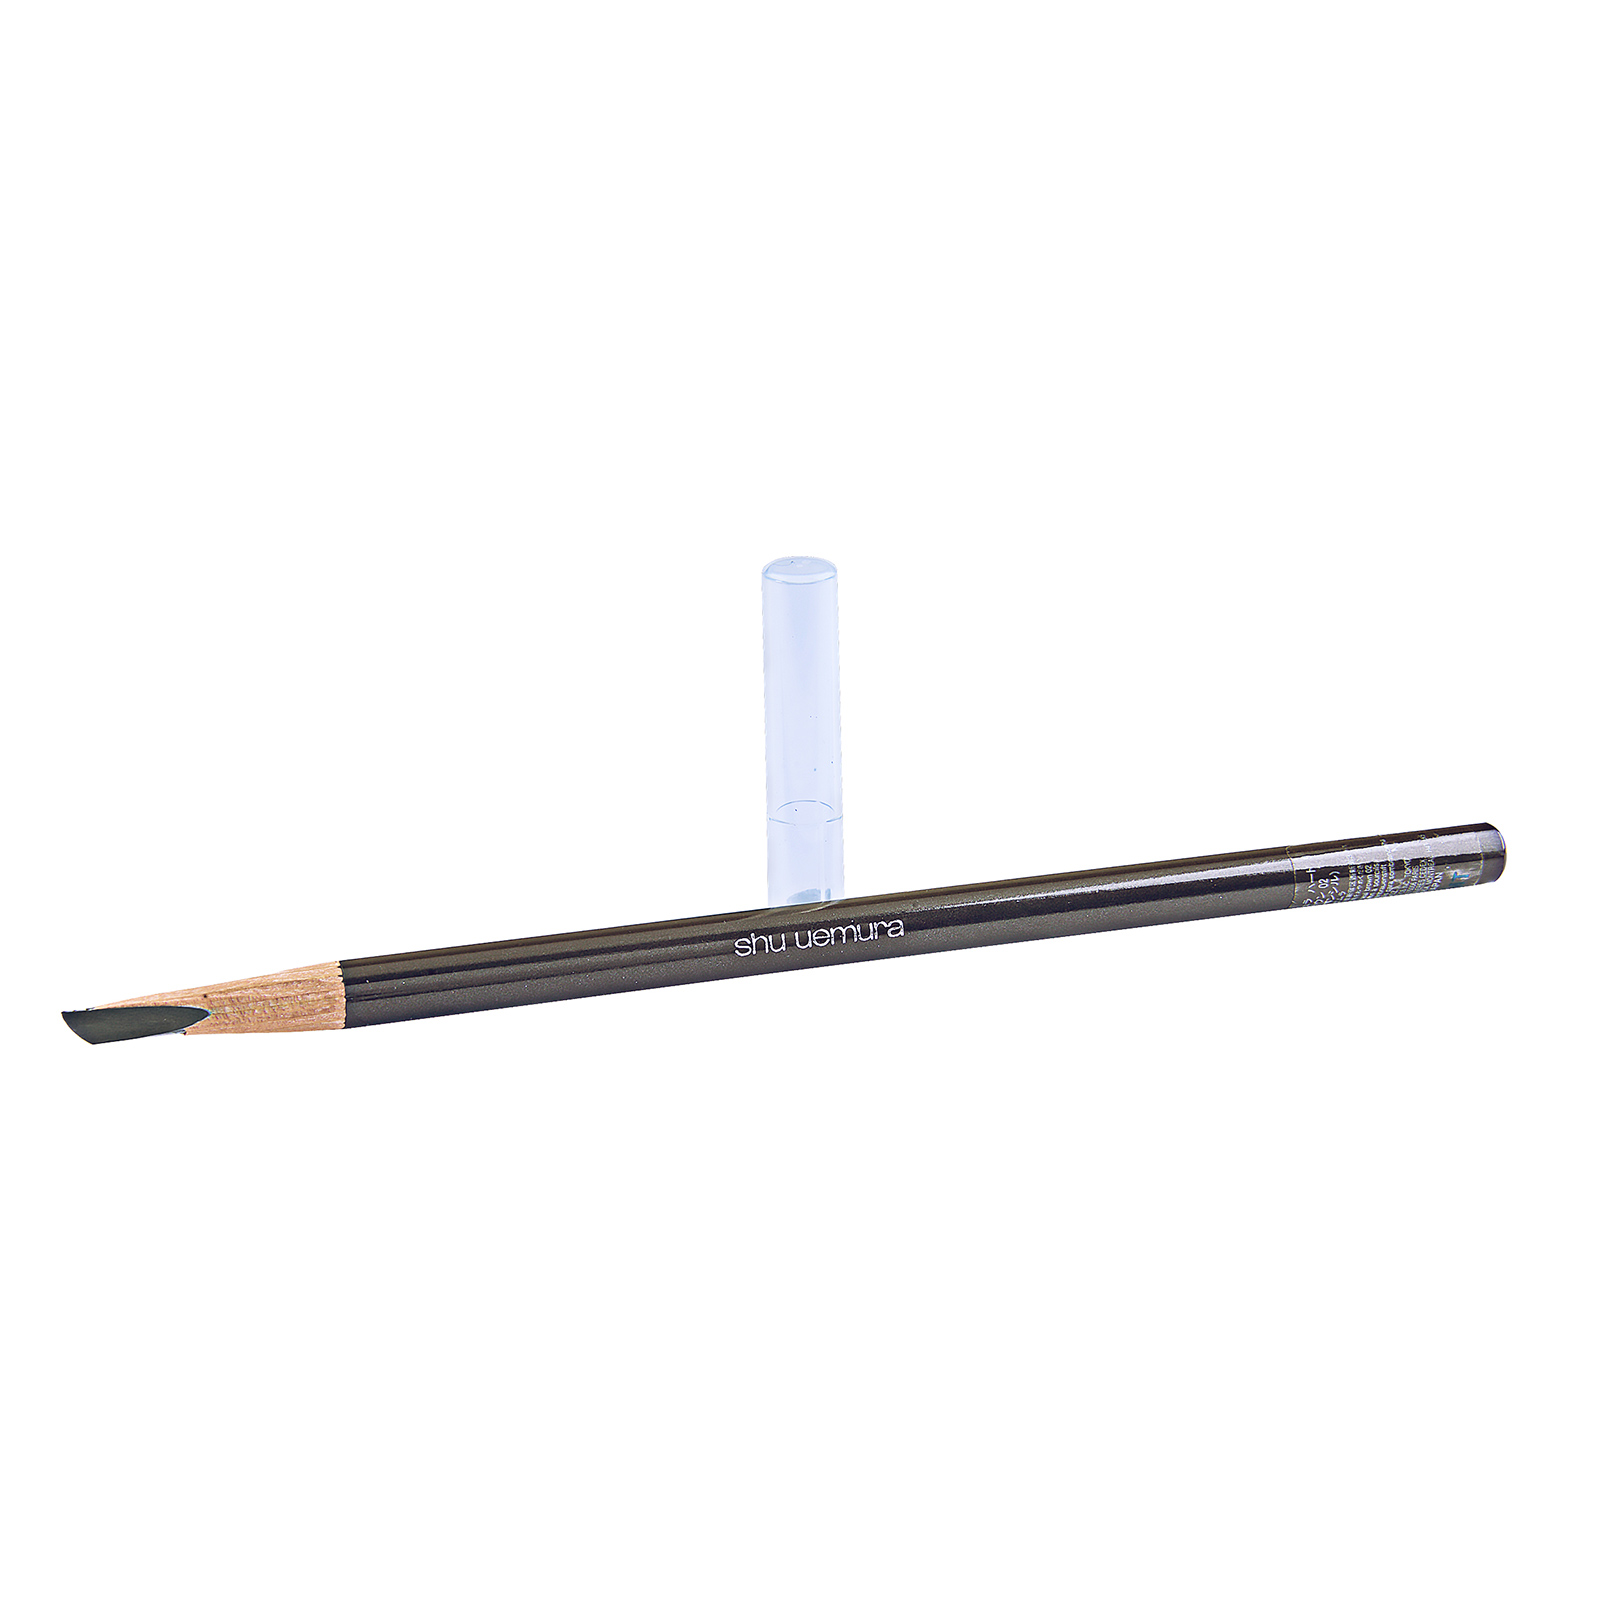 Shu Uemura Hard Formula H9 (Sharpened) 02 Seal Brown, 4g,